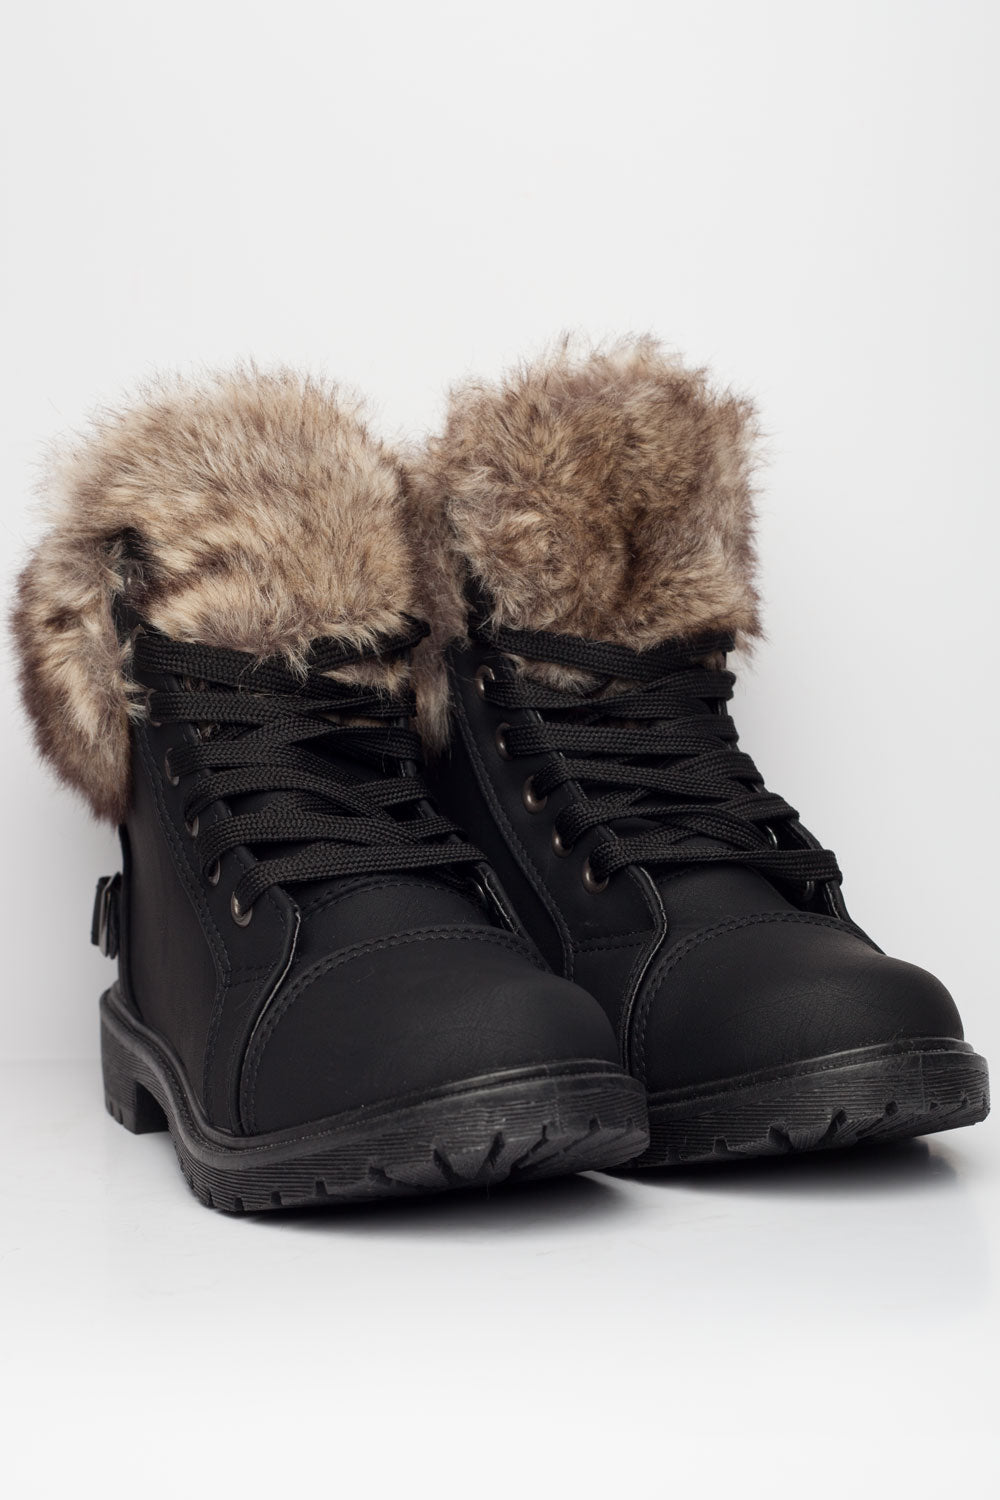 girls fur lined ankle boots winter